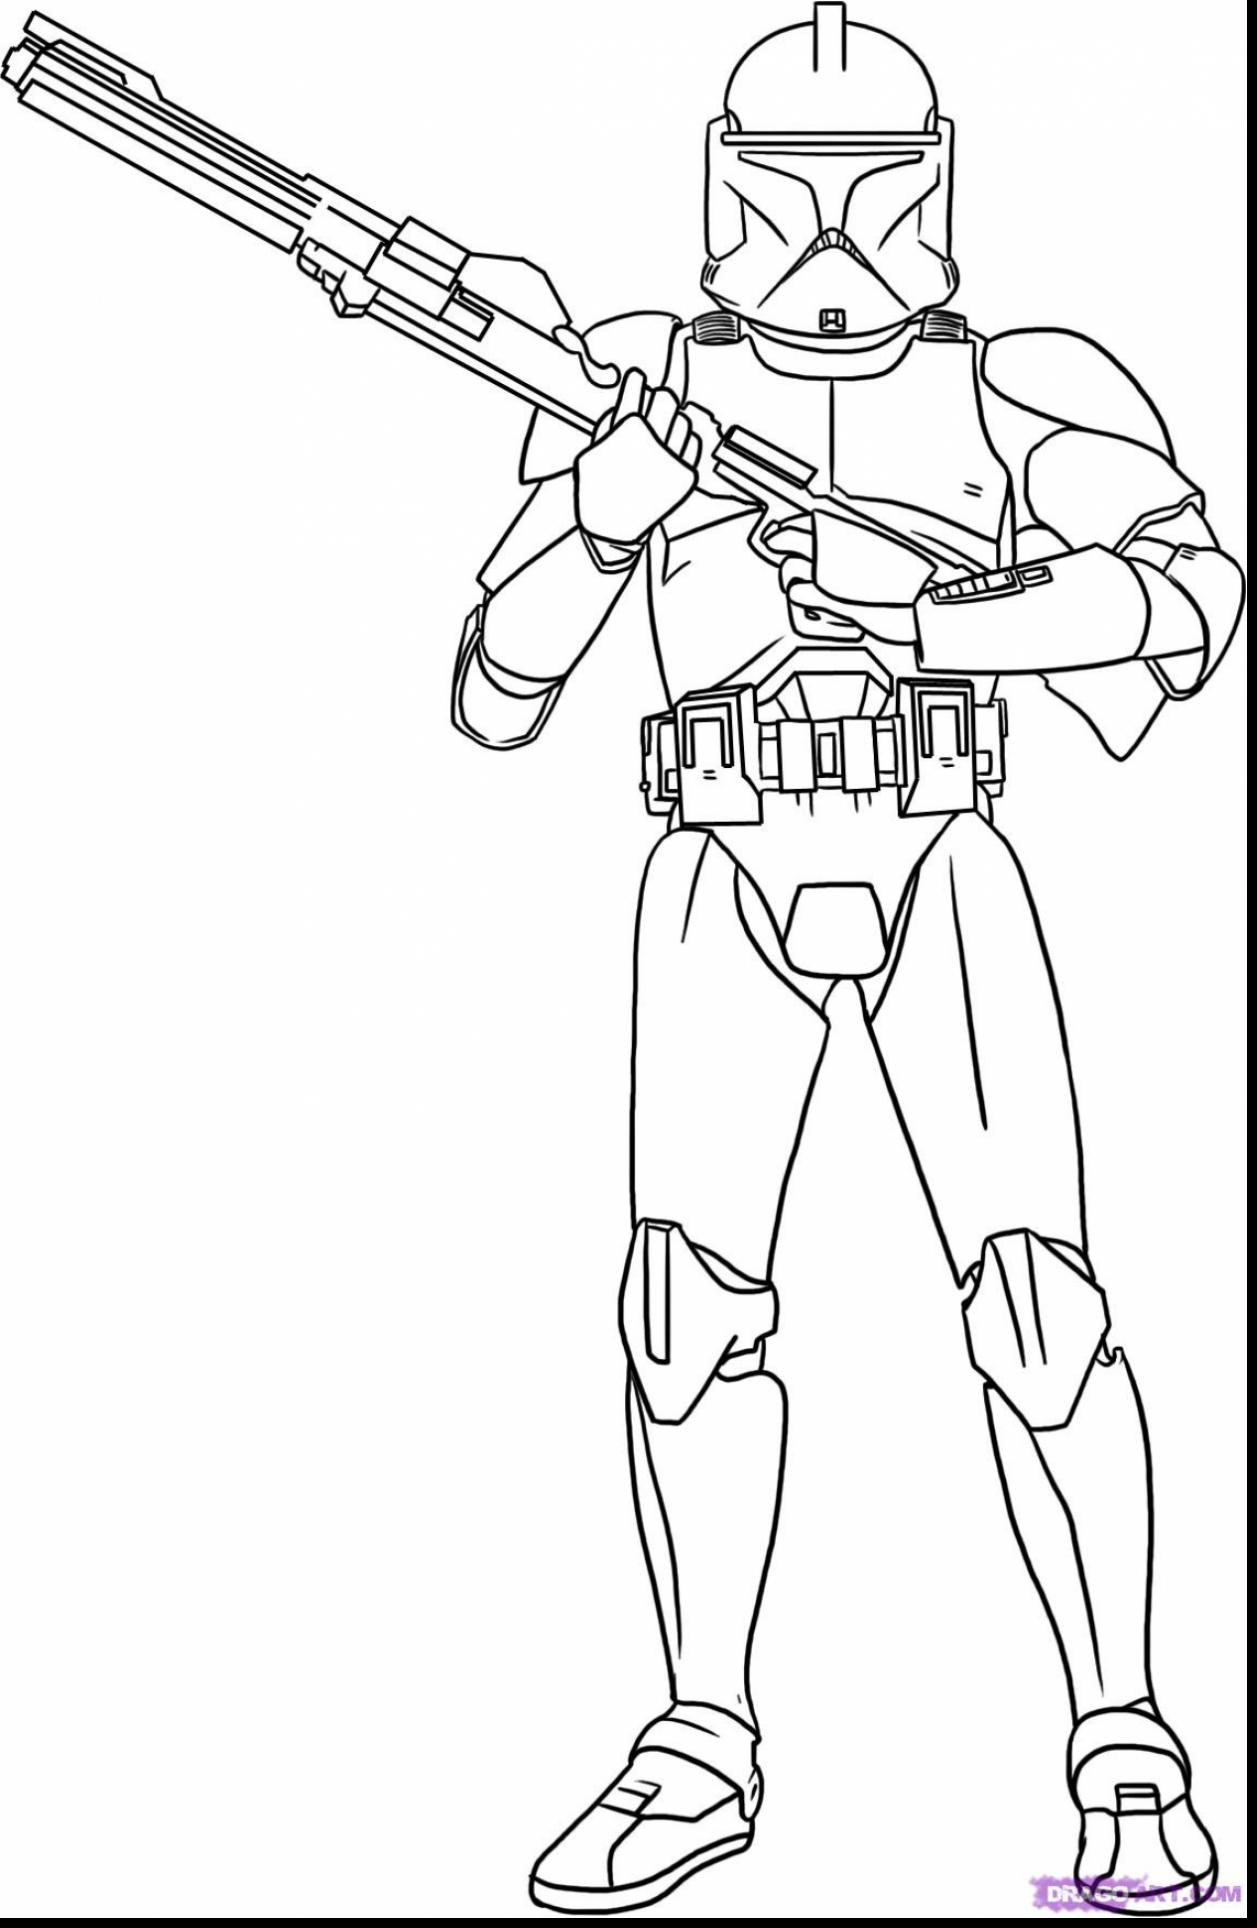 Ausmalbilder Star Wars the Clone Wars Frisch Mander Cody Coloring Page Best Beautiful Clone Trooper Genial Galerie